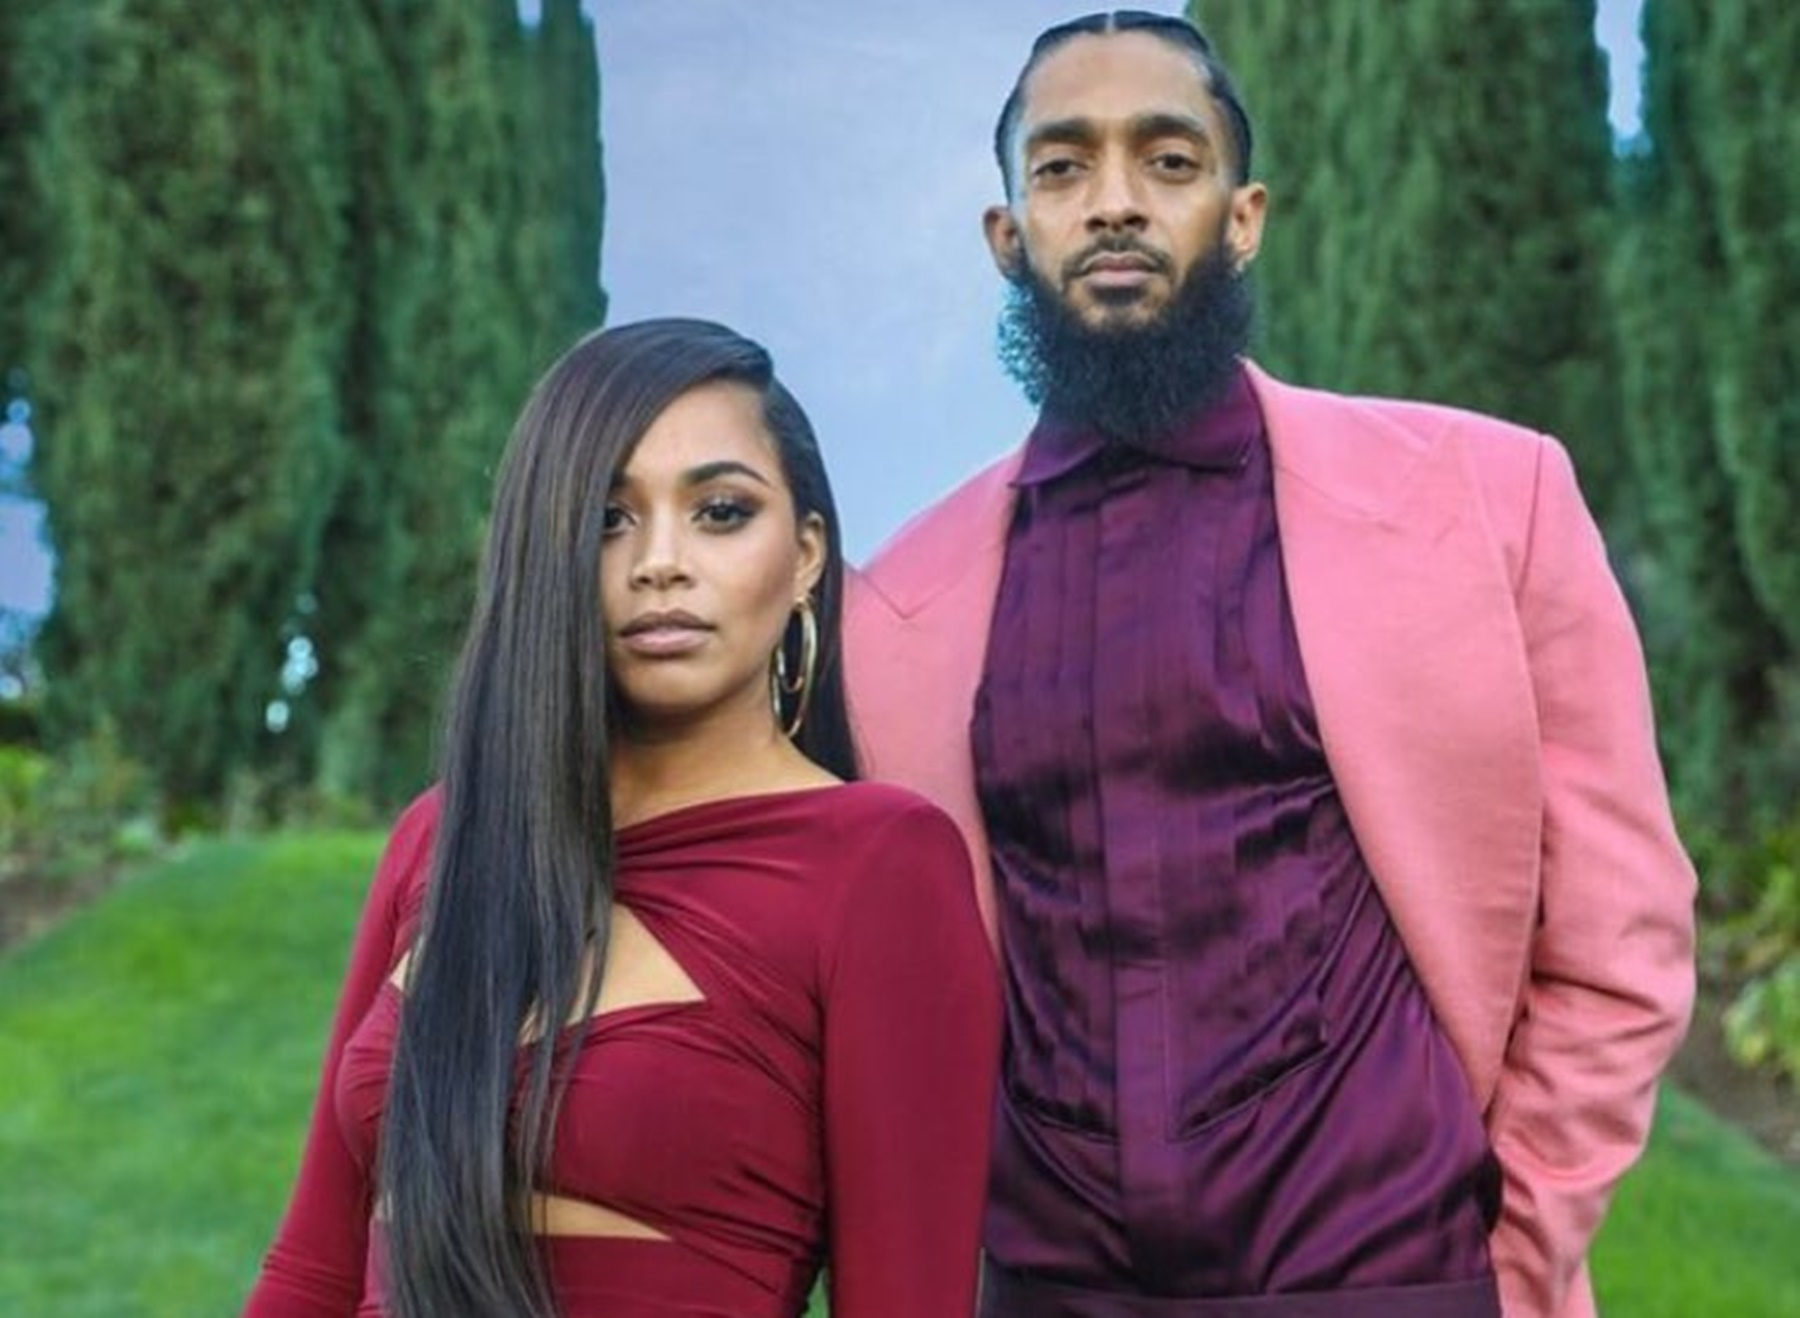 lauren-london-and-rest-of-nipsey-hussles-family-pay-respects-while-some-fans-are-still-looking-for-answers